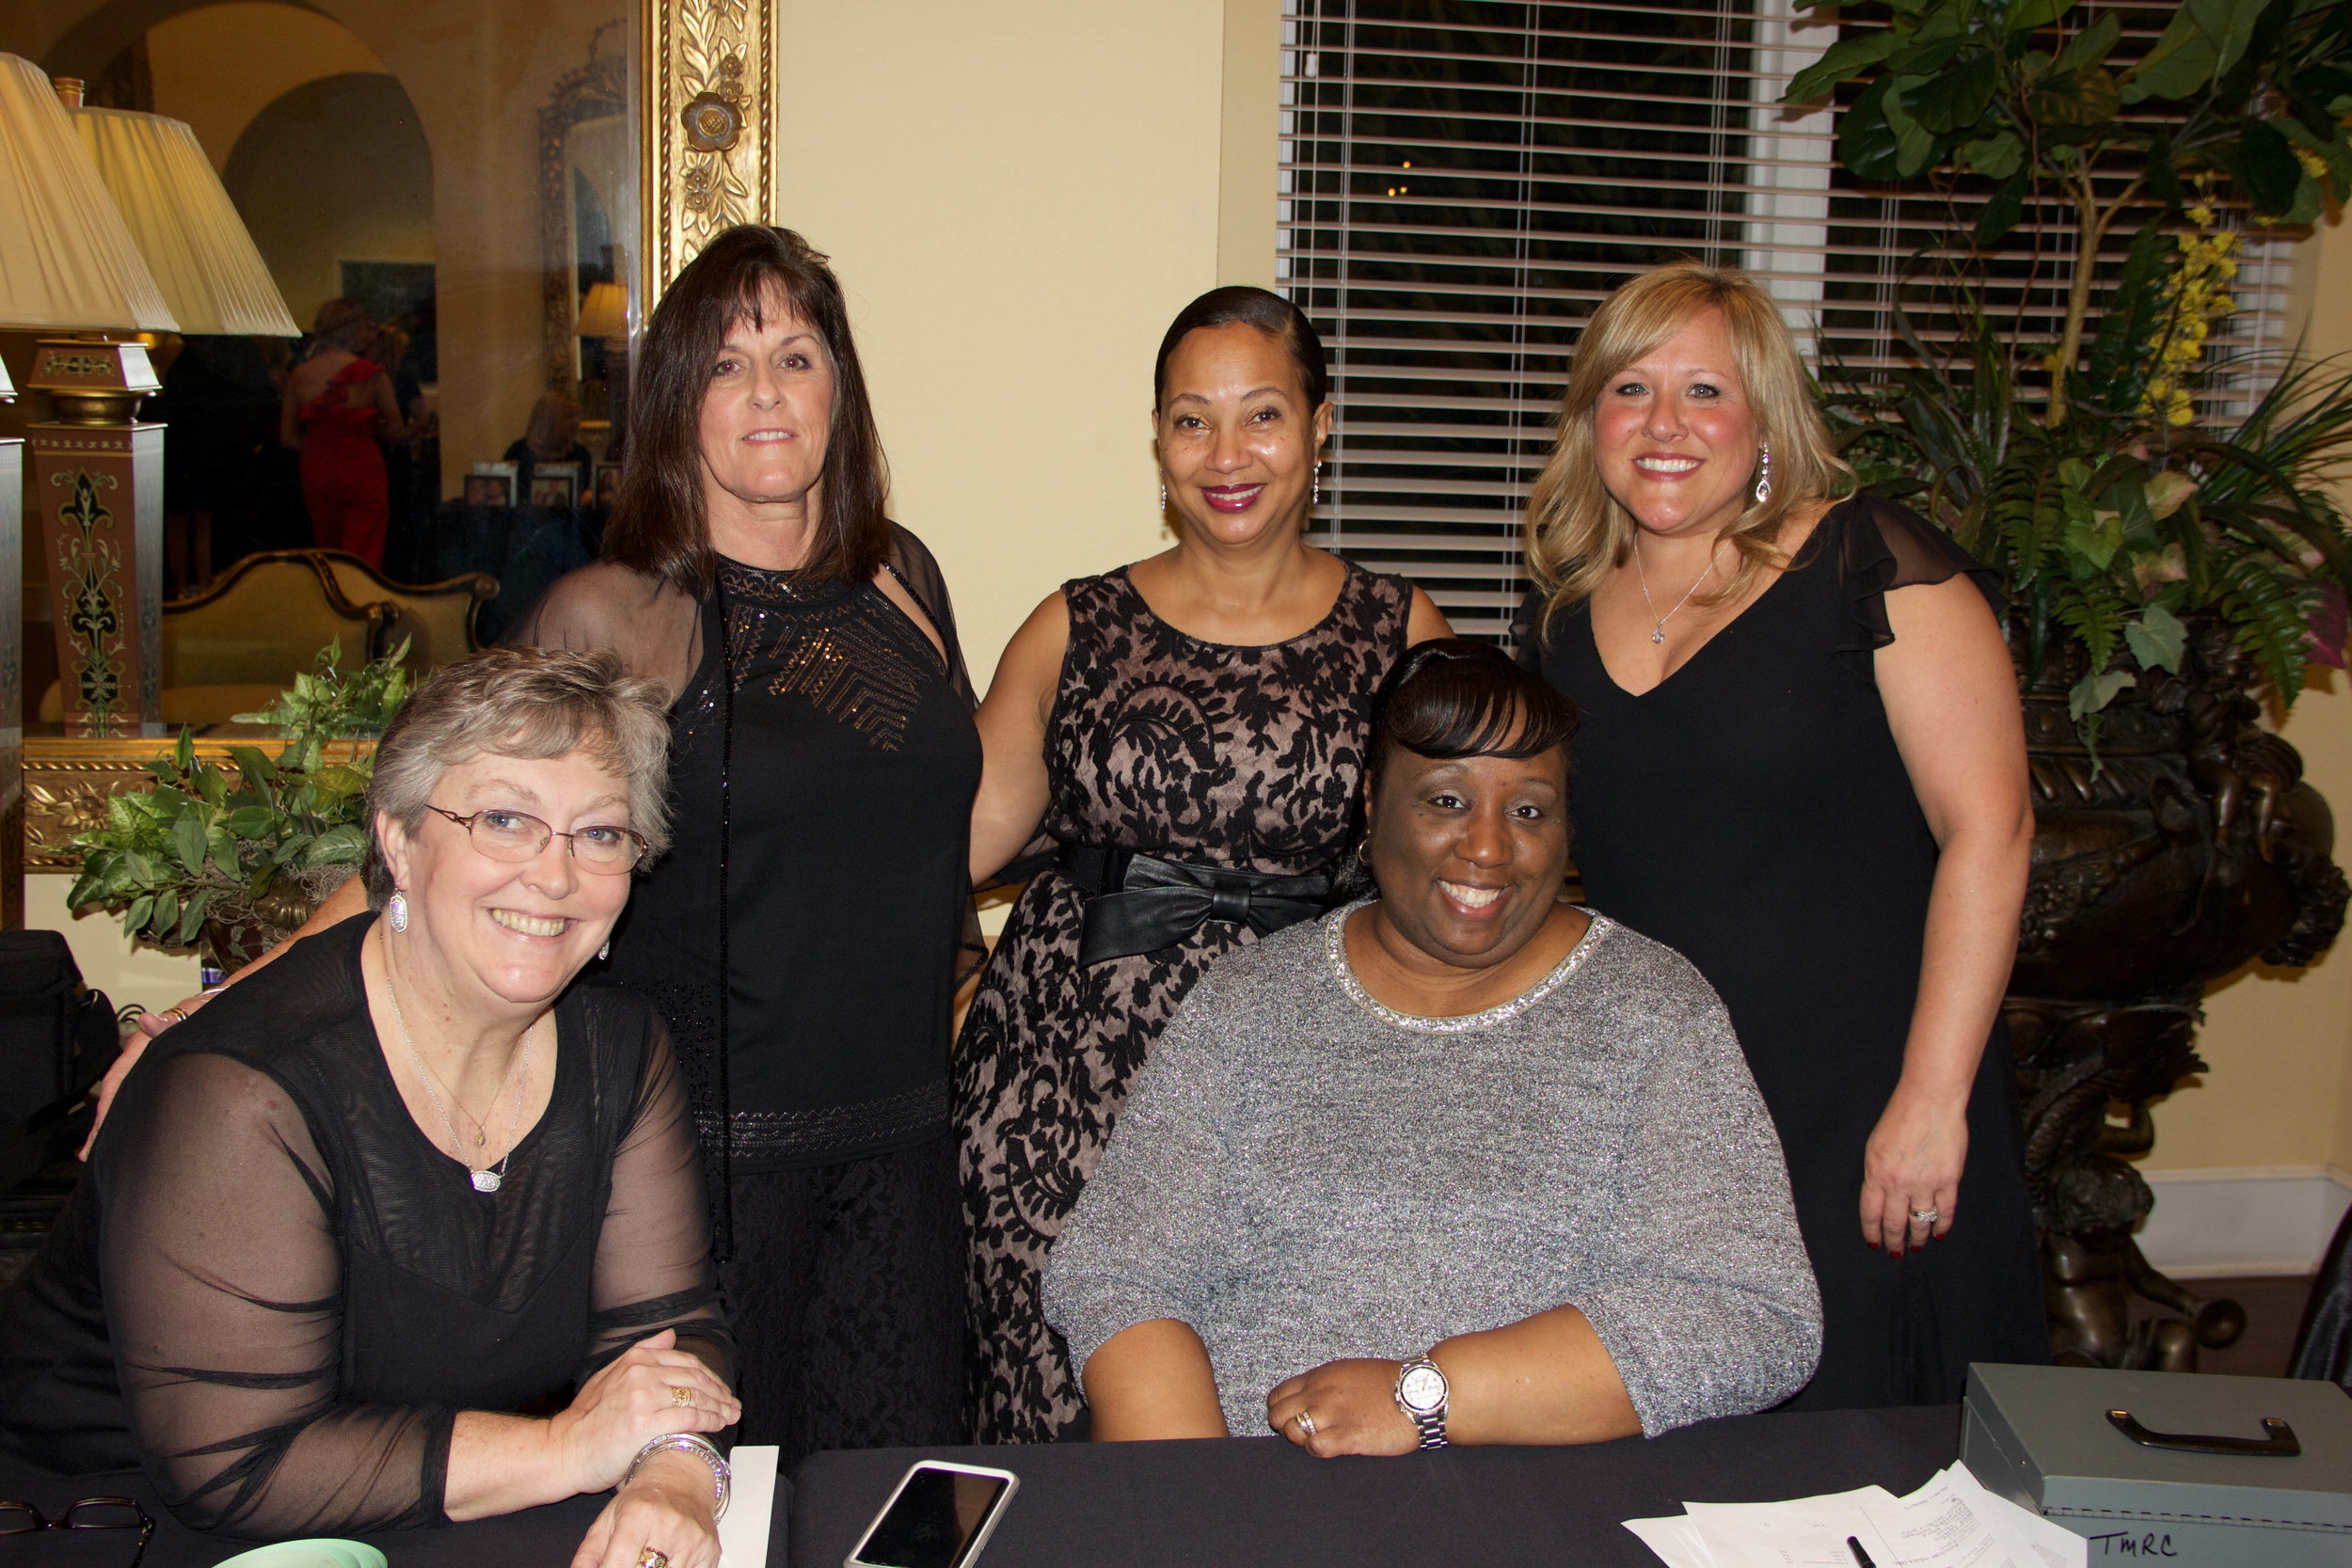 inne Walker, Brenda Reid, Lisa Dupree and Amber Hall